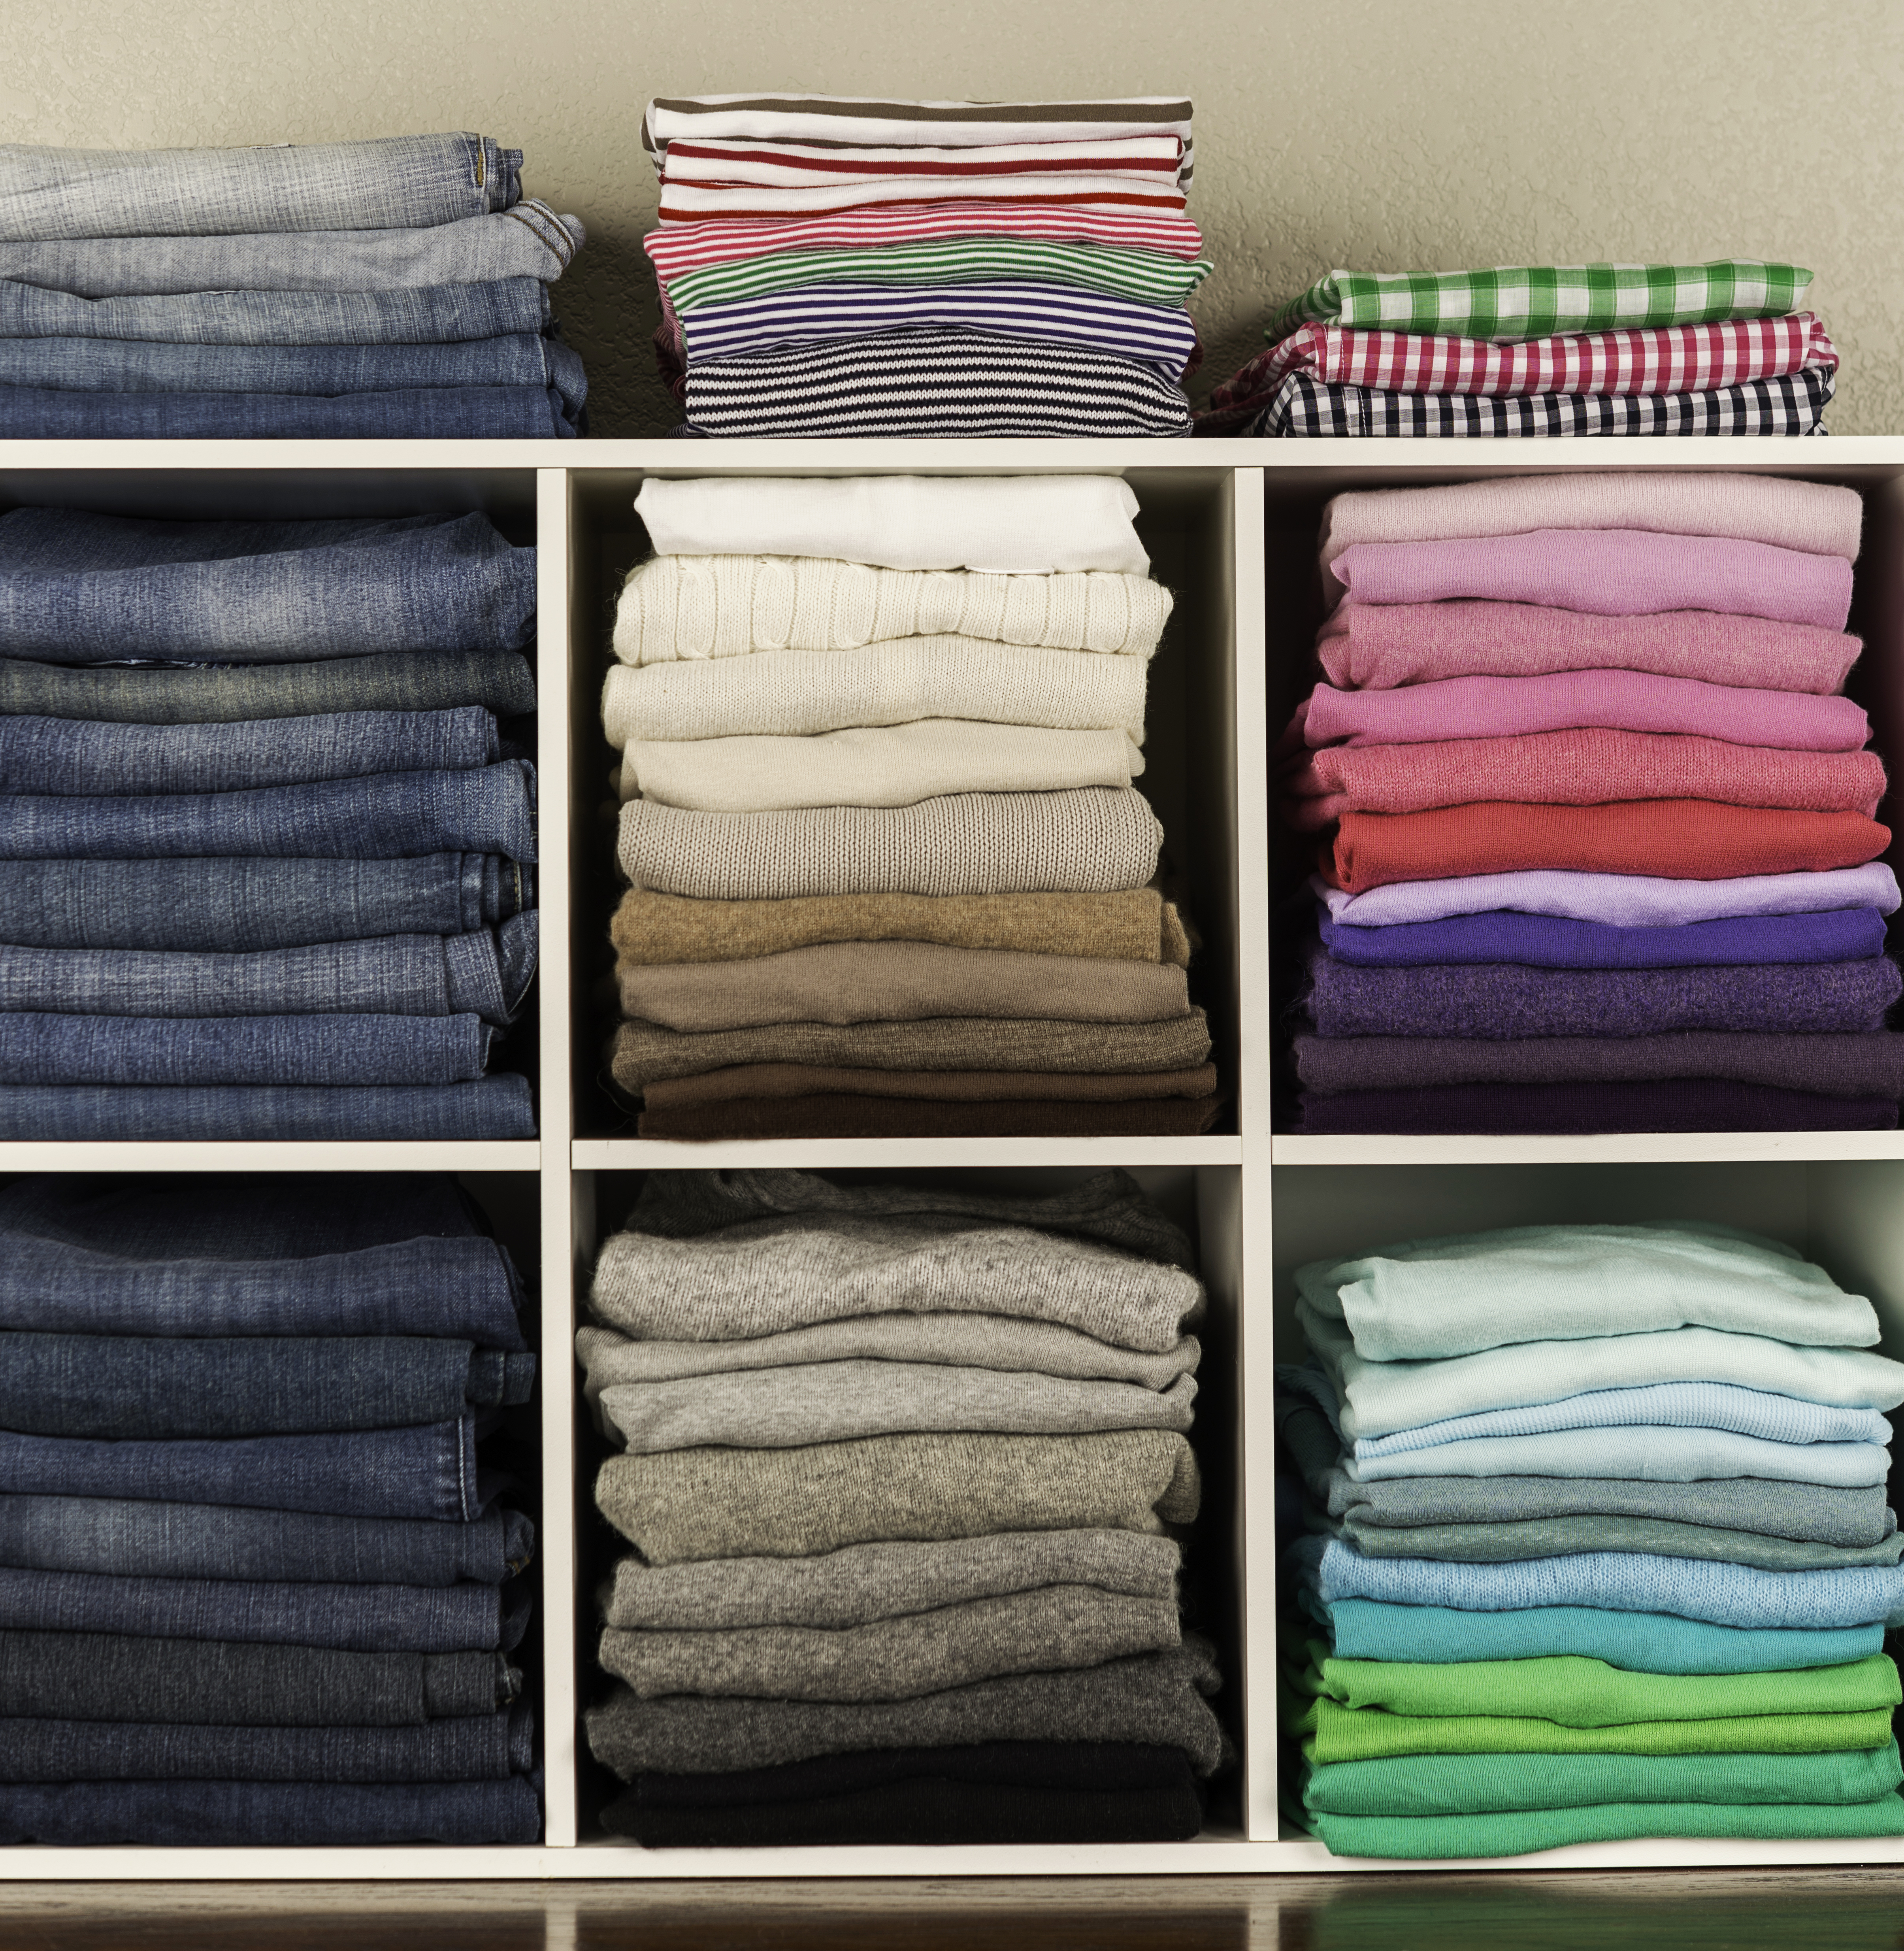 Neatly organized womens clothing in white cubicles